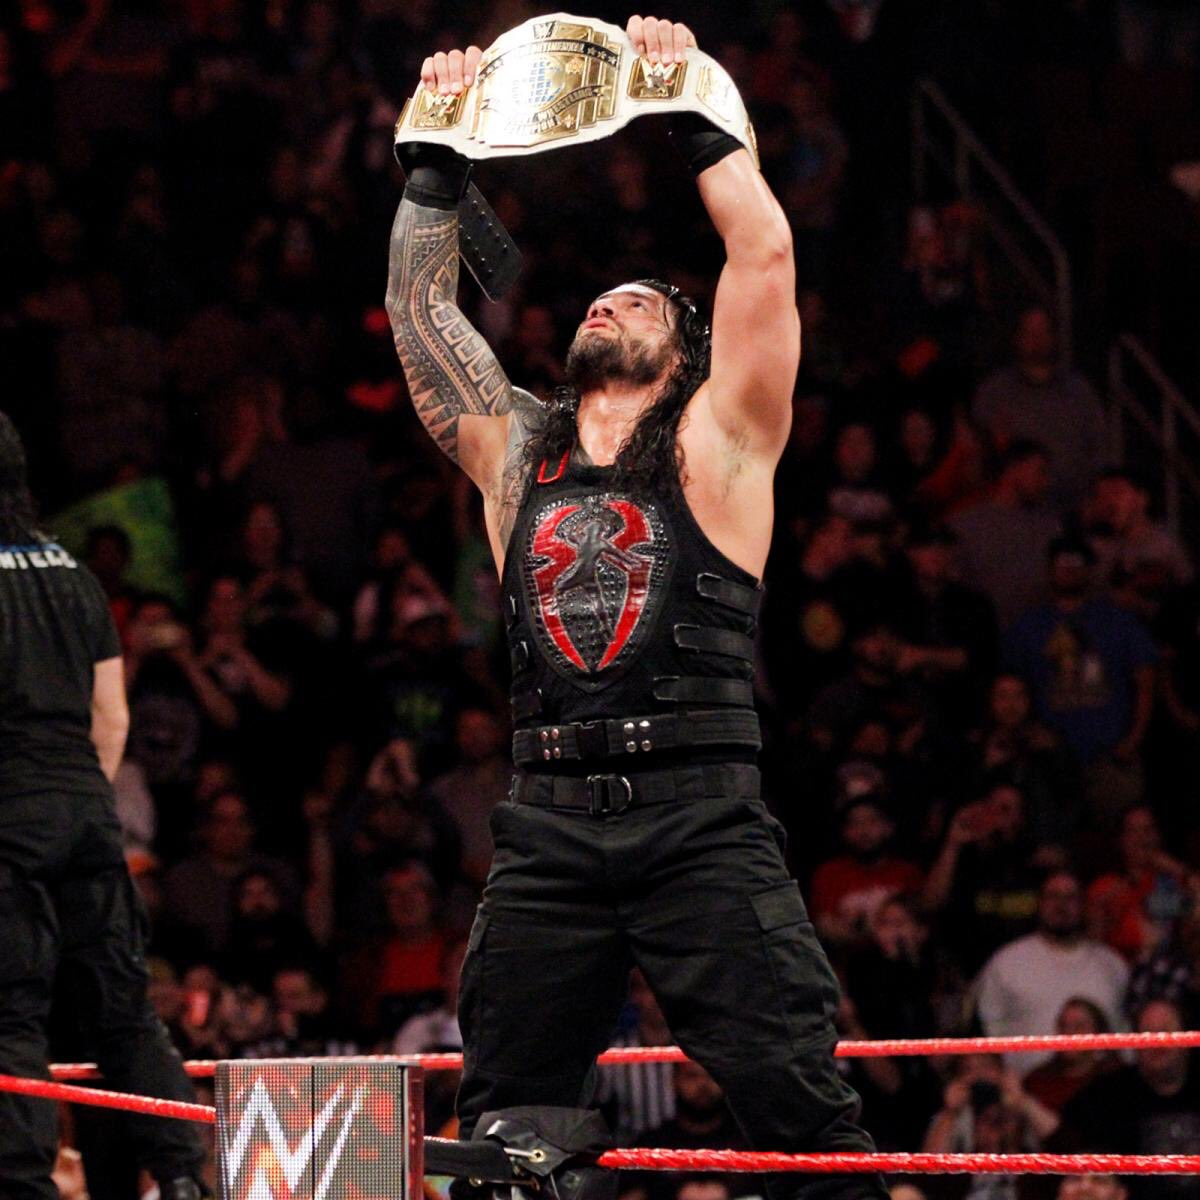 Wherever I am, consider it My Yard.   So if you want my title... ...all you have to do is step up. #Raw <br>http://pic.twitter.com/jjJaklC5fF